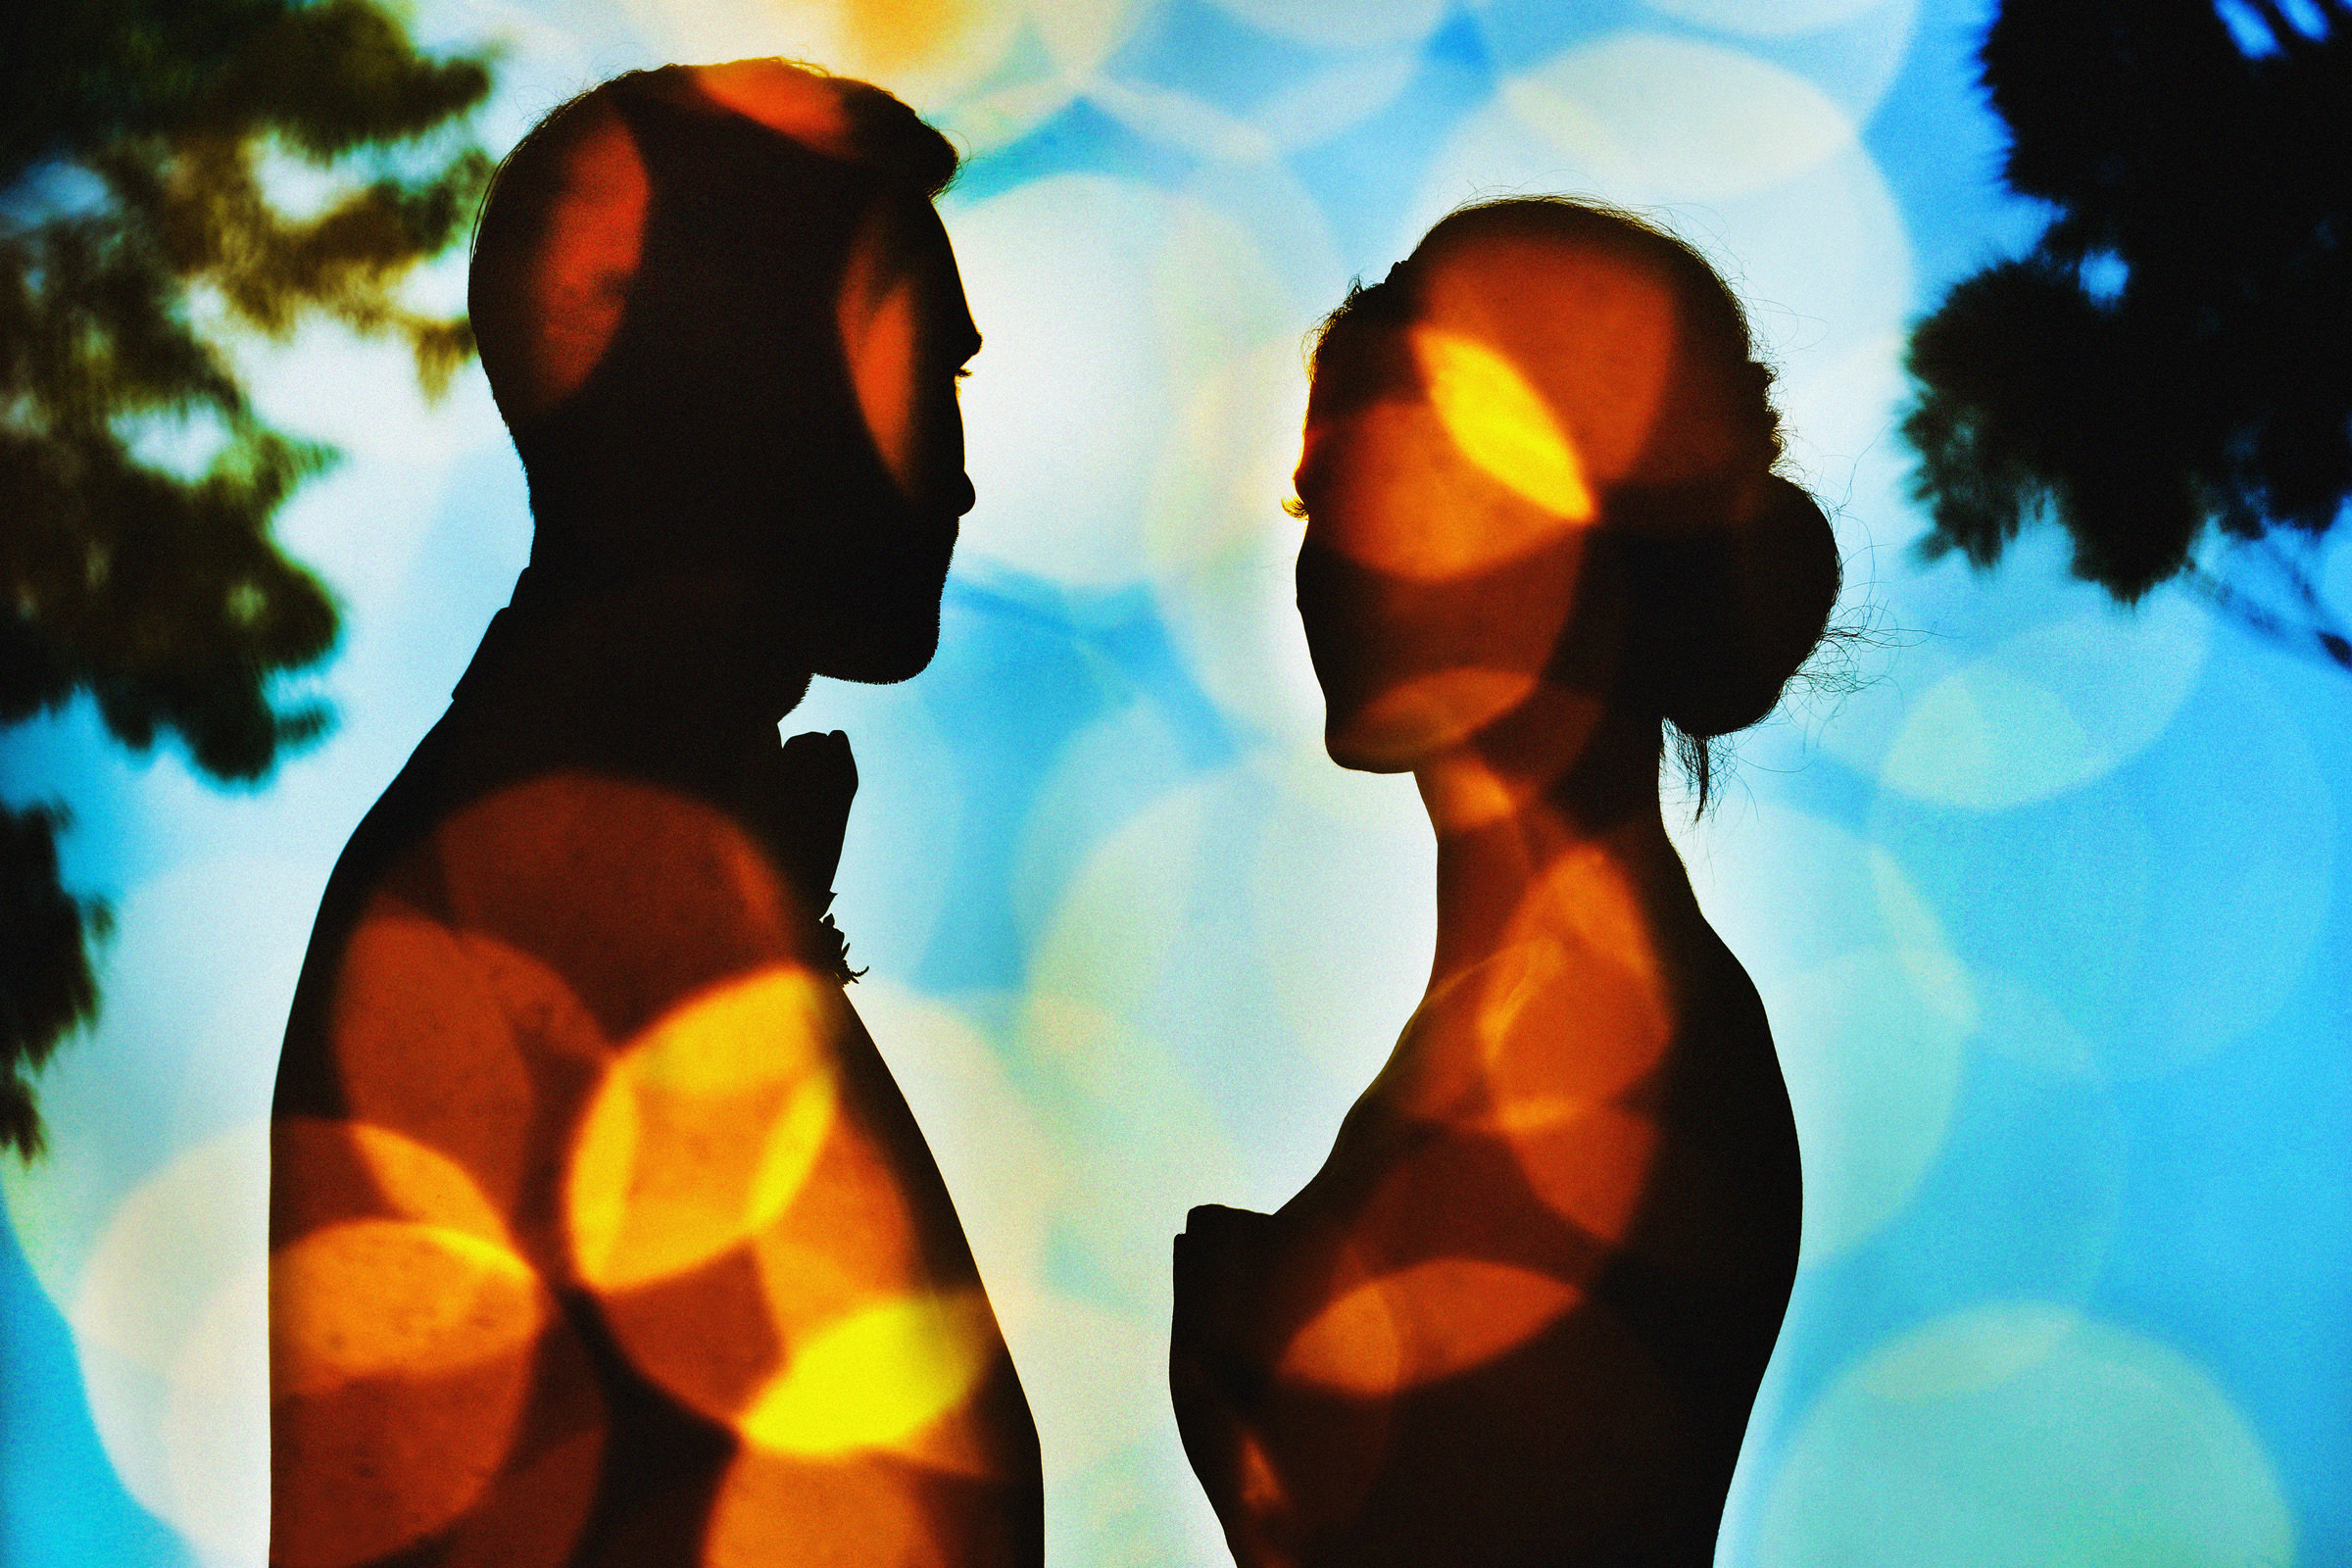 creative-double-exposure-silhouette-by-franck-boutonnet-france-wedding-photographer